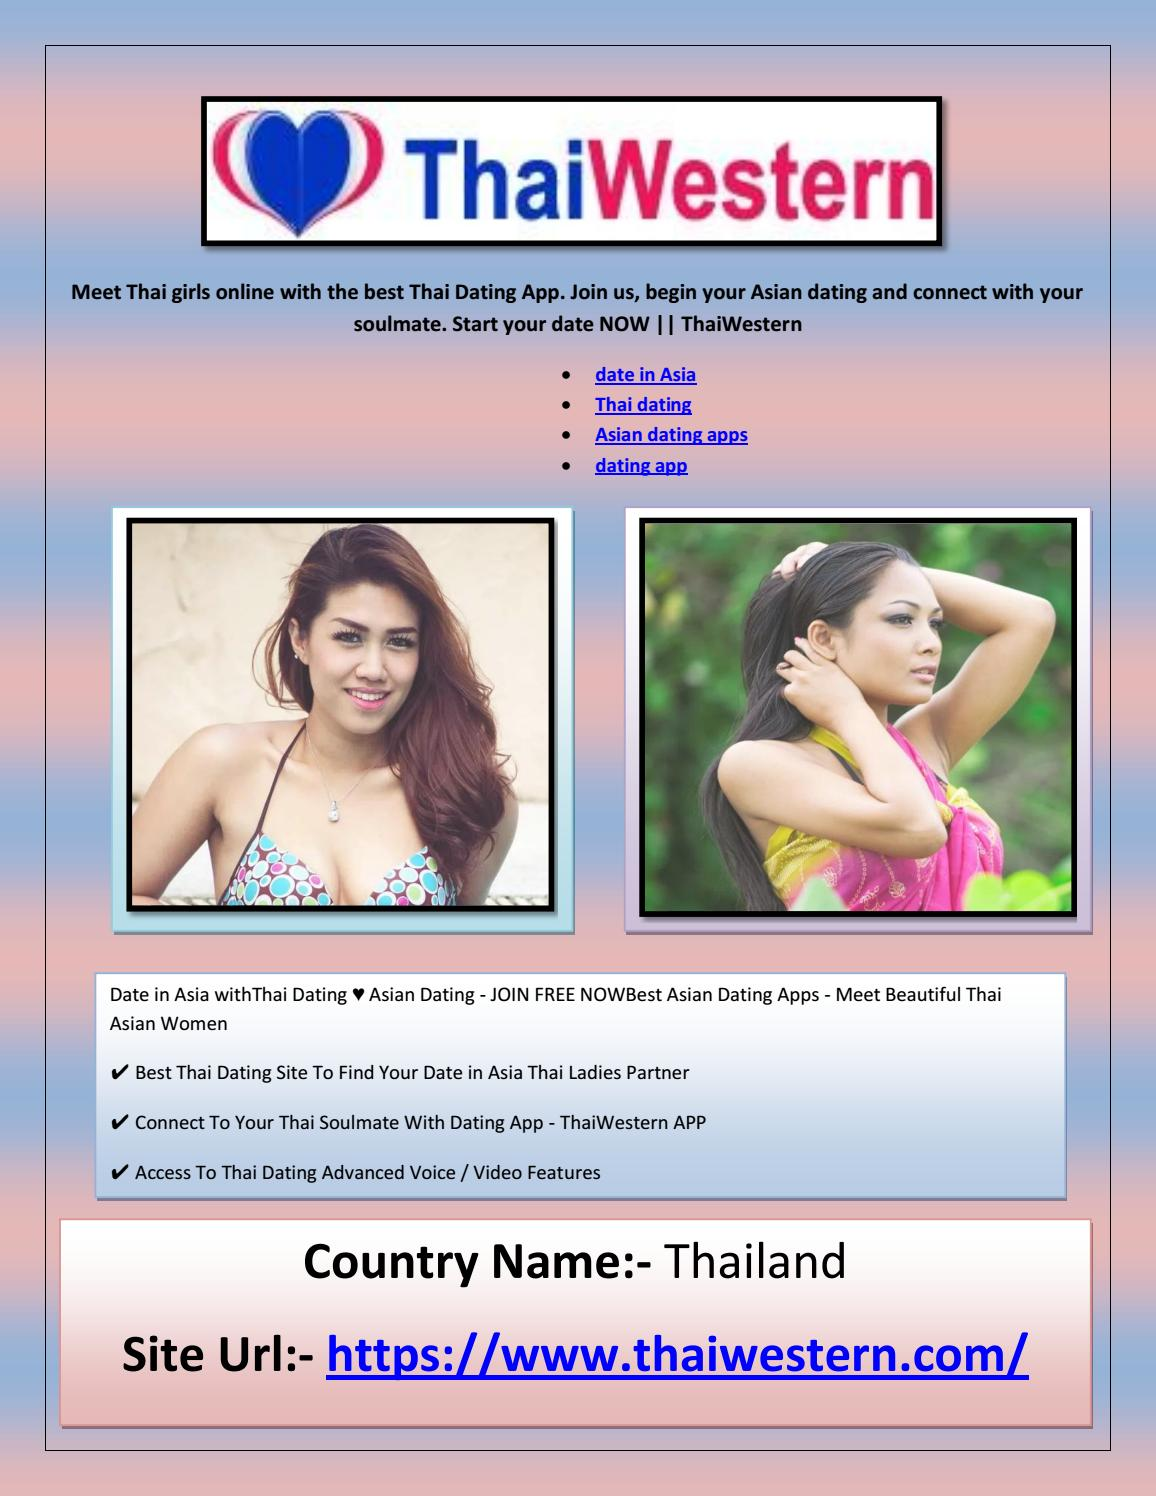 Dateinasia Dating-Website